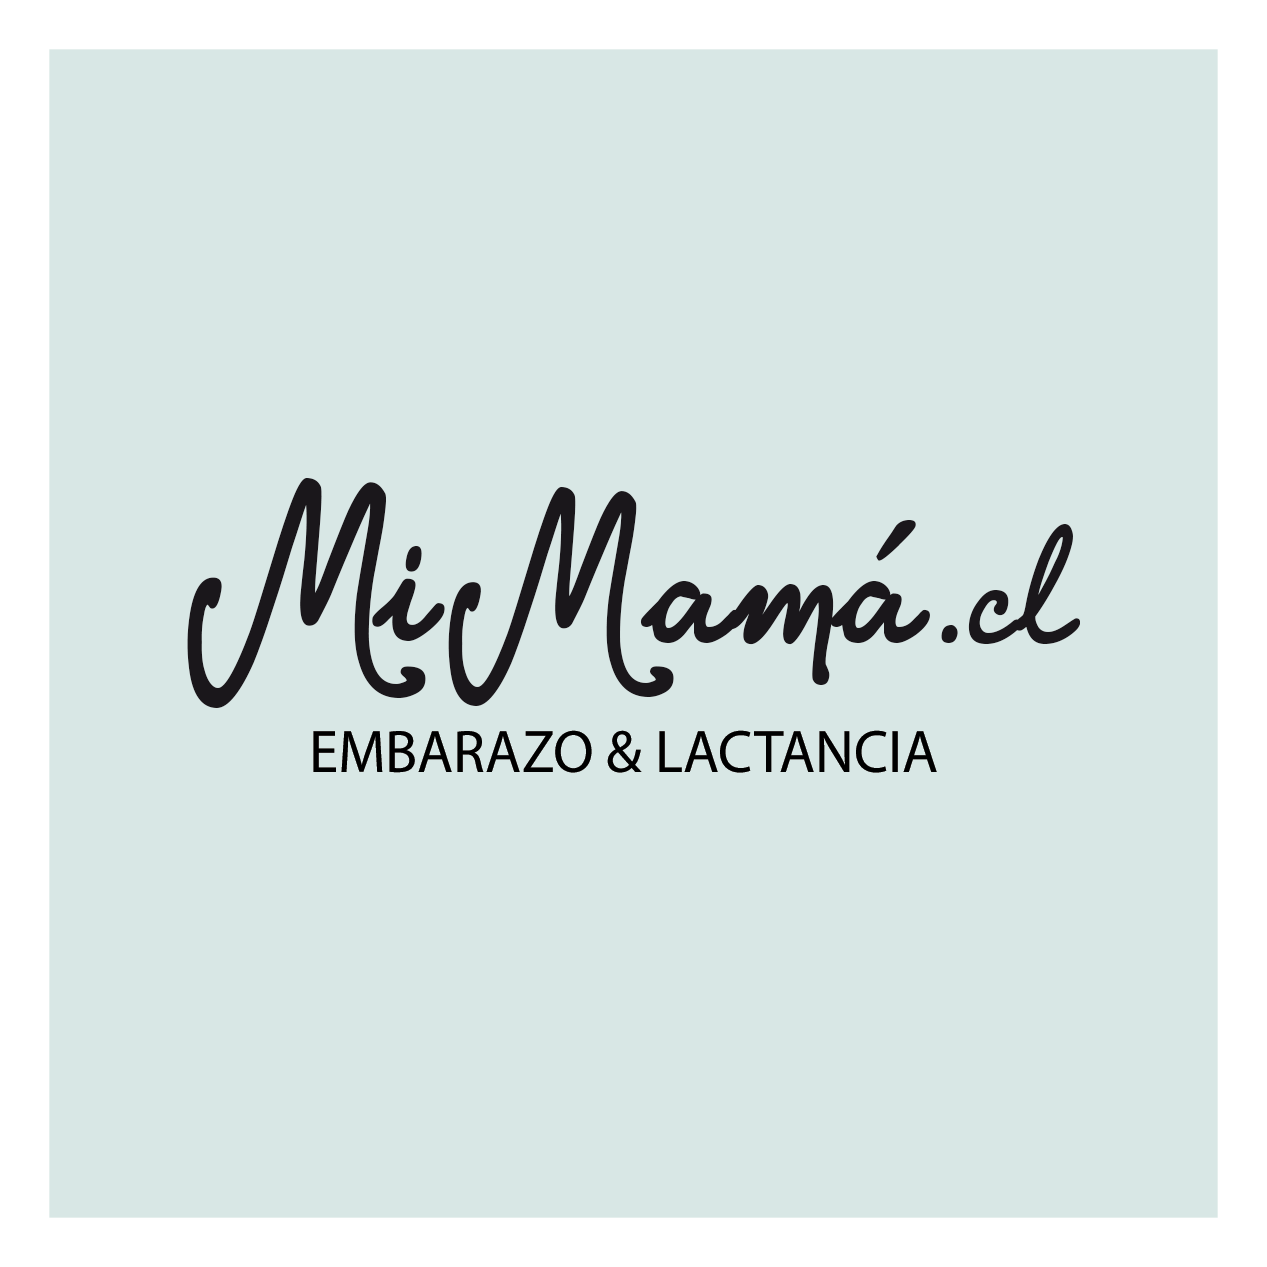 MiMama.cl - Embarazo & Lactancia